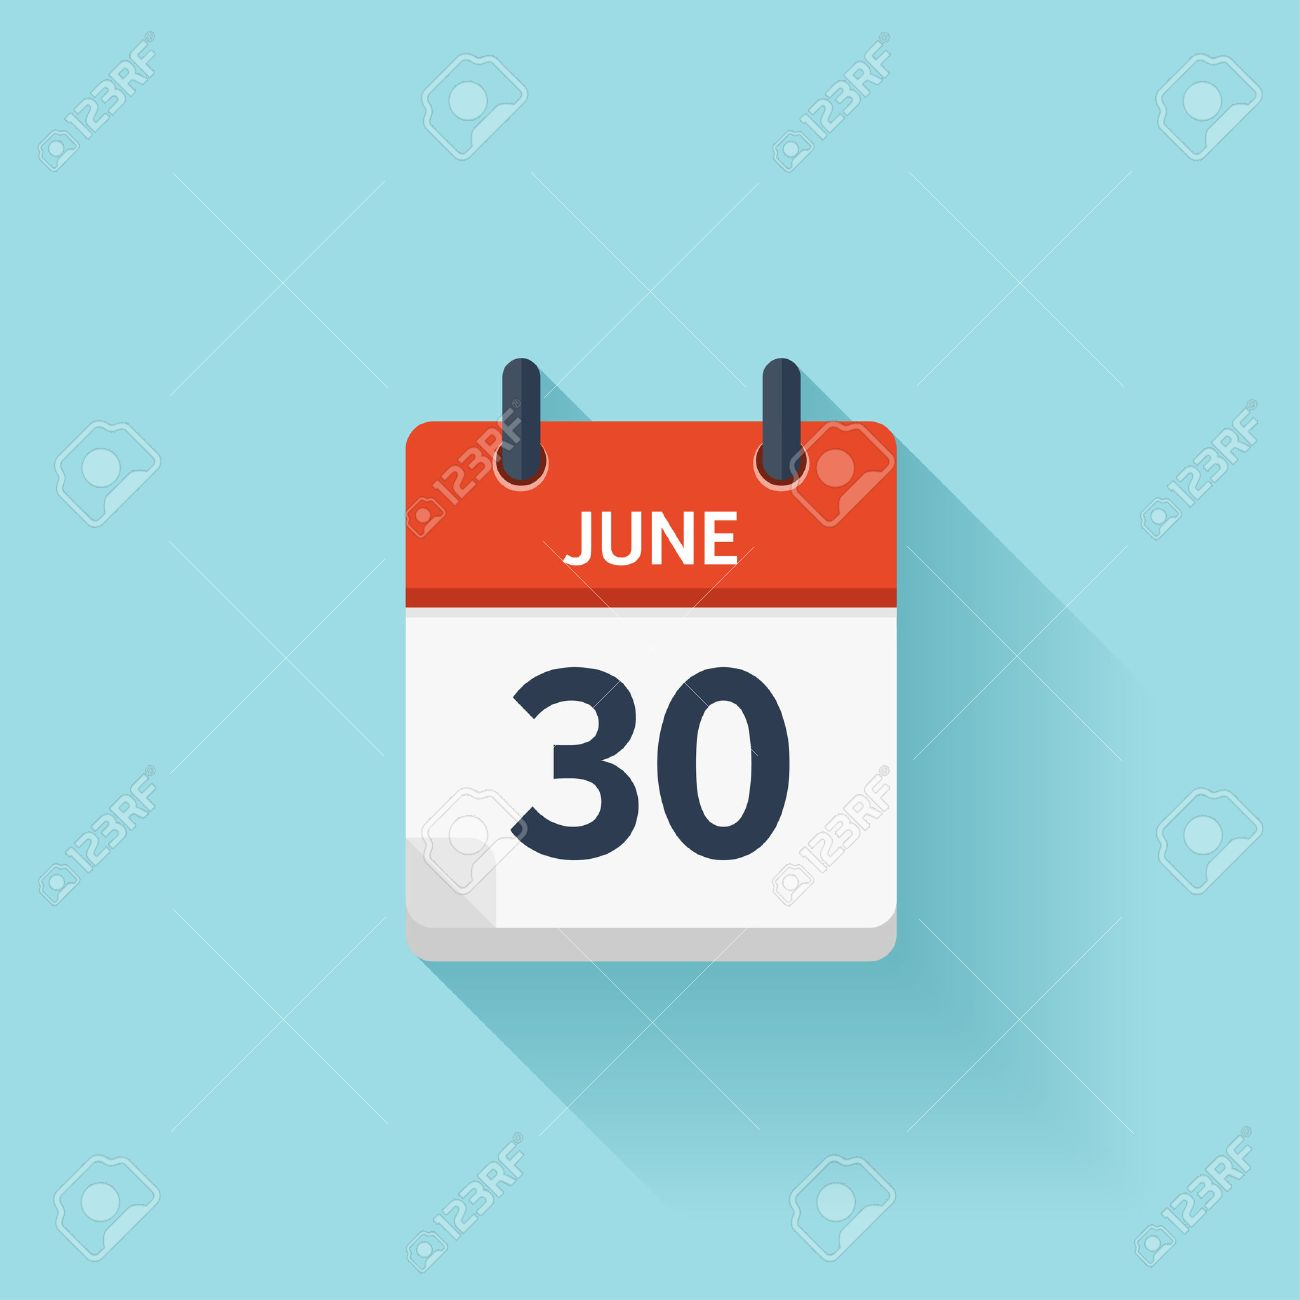 June 30 . Vector flat daily calendar icon. Date and time, day, month. Holiday. - 54048108